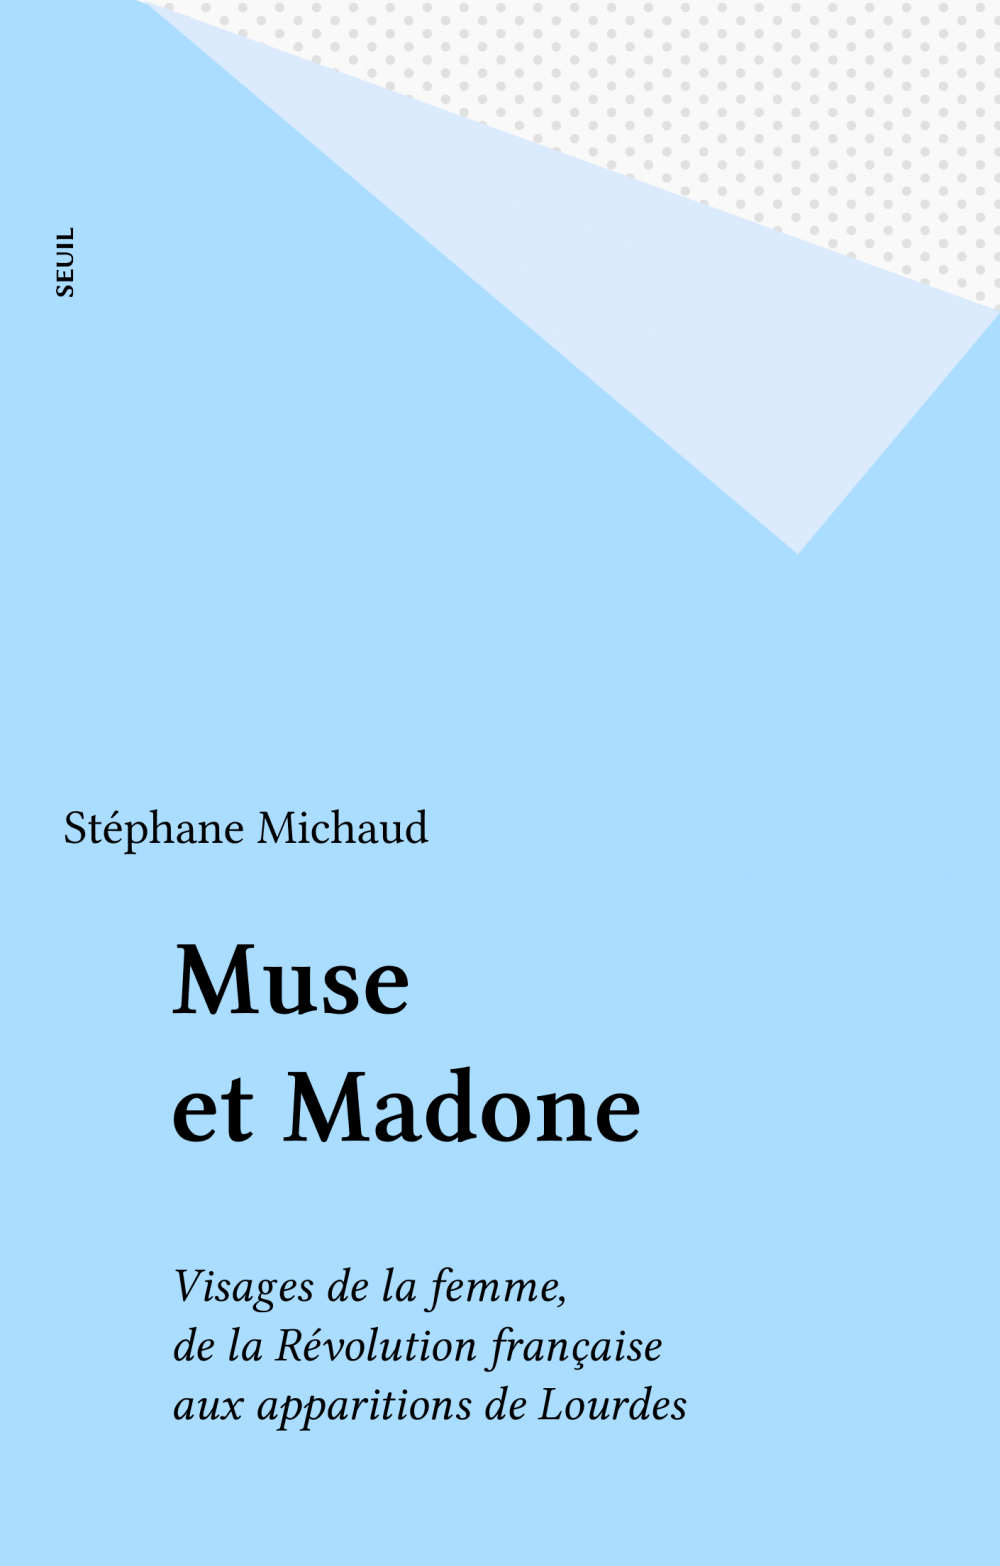 Muse et Madone